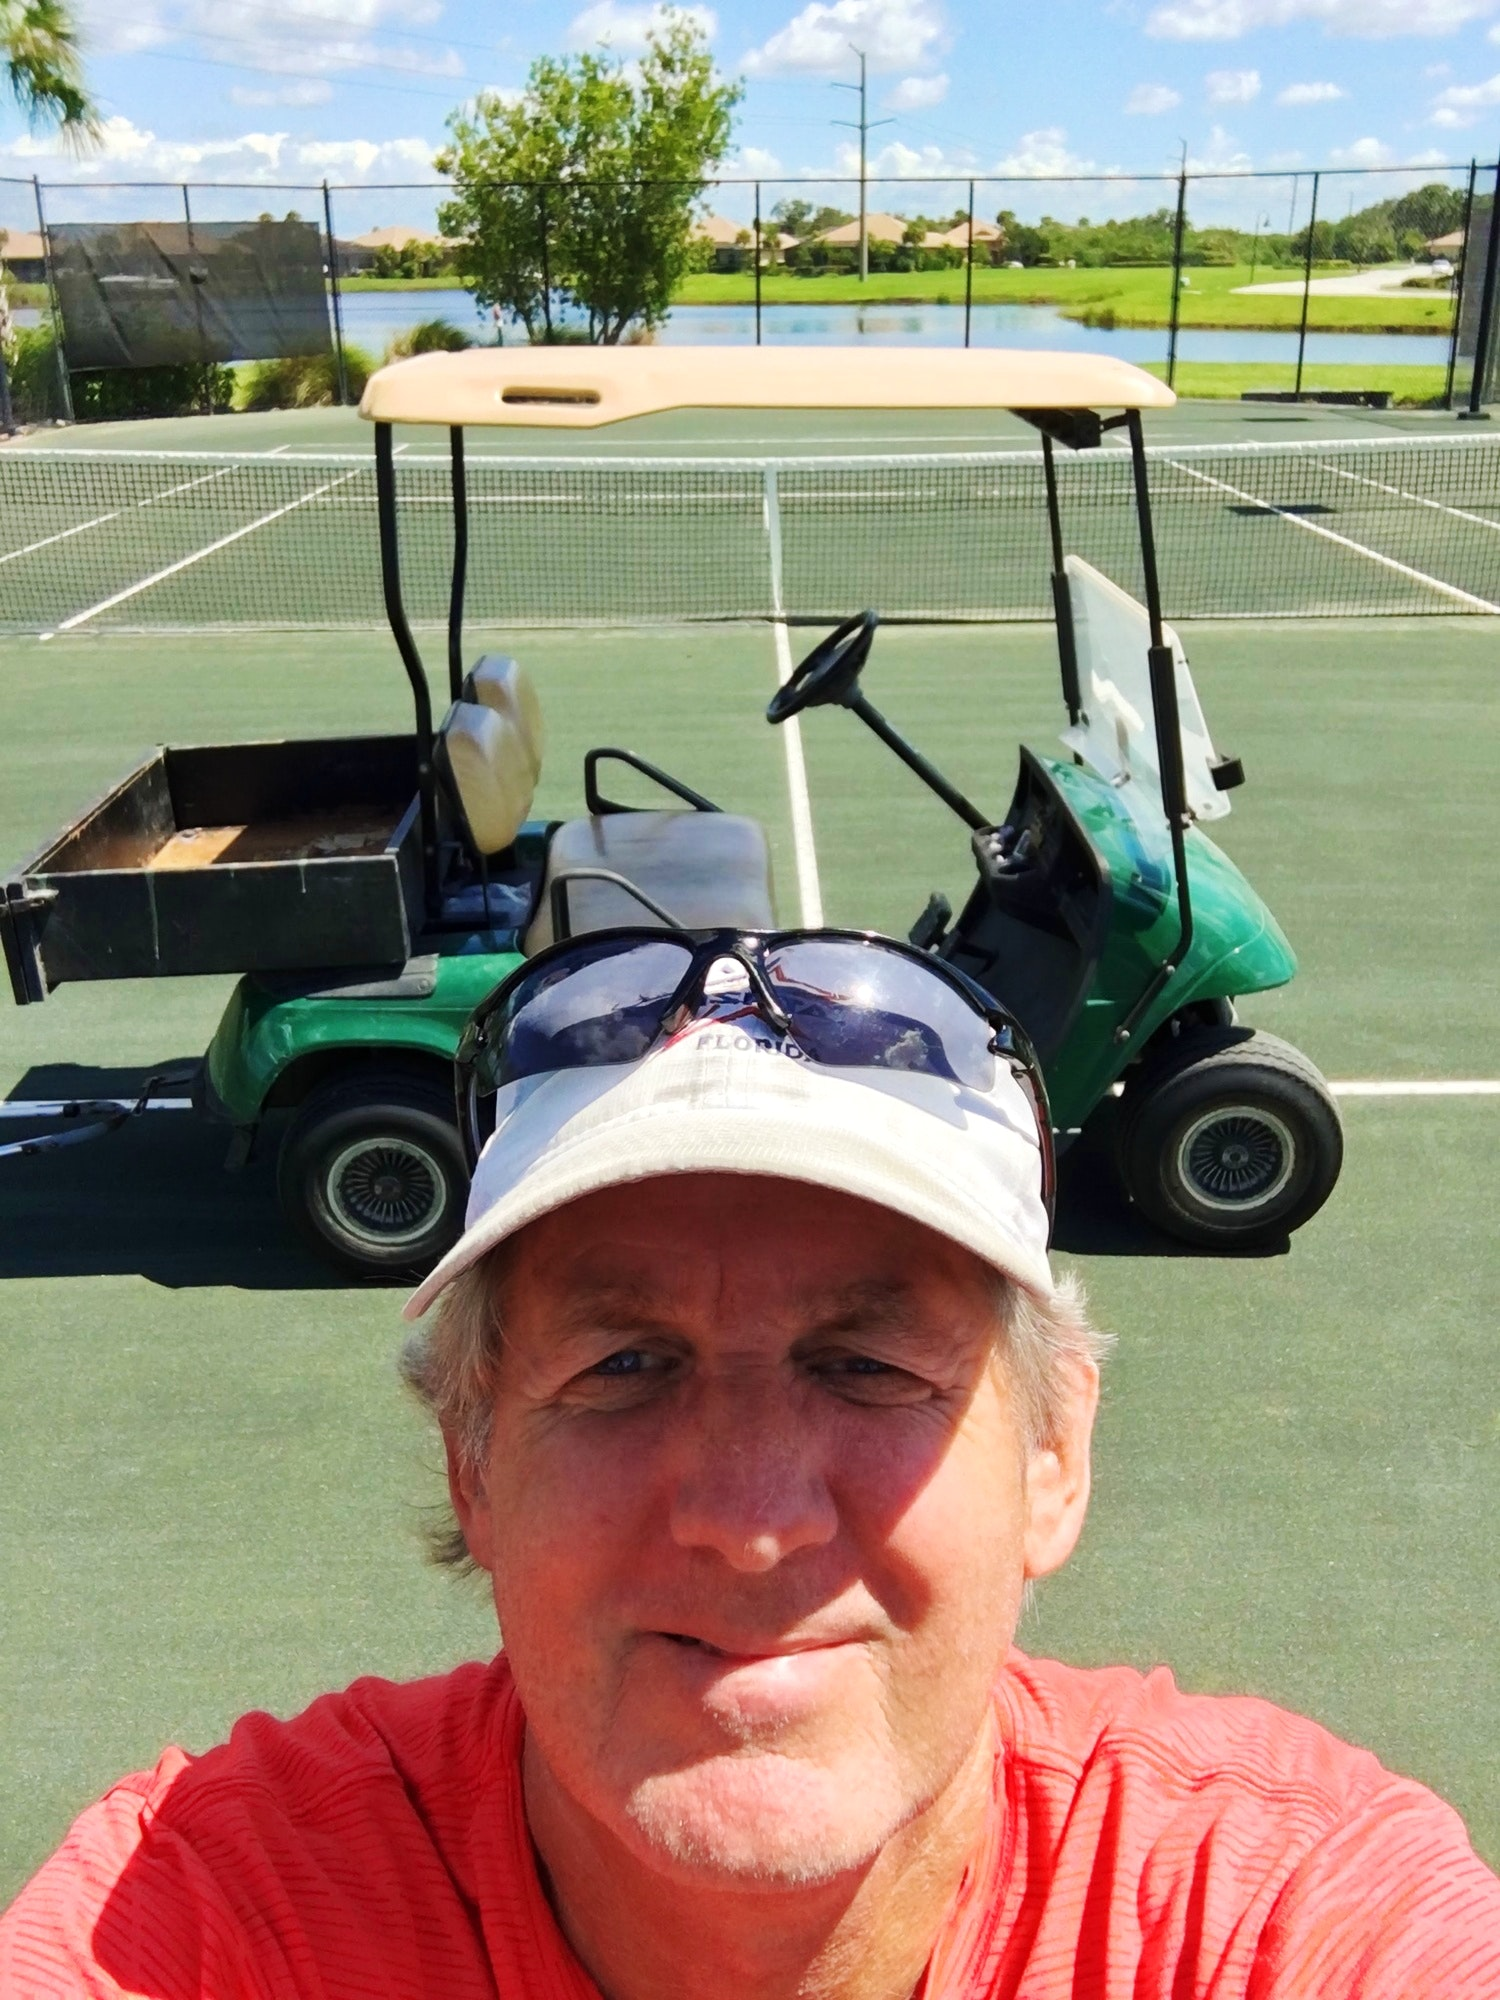 Alan S. teaches tennis lessons in Bradenton, FL